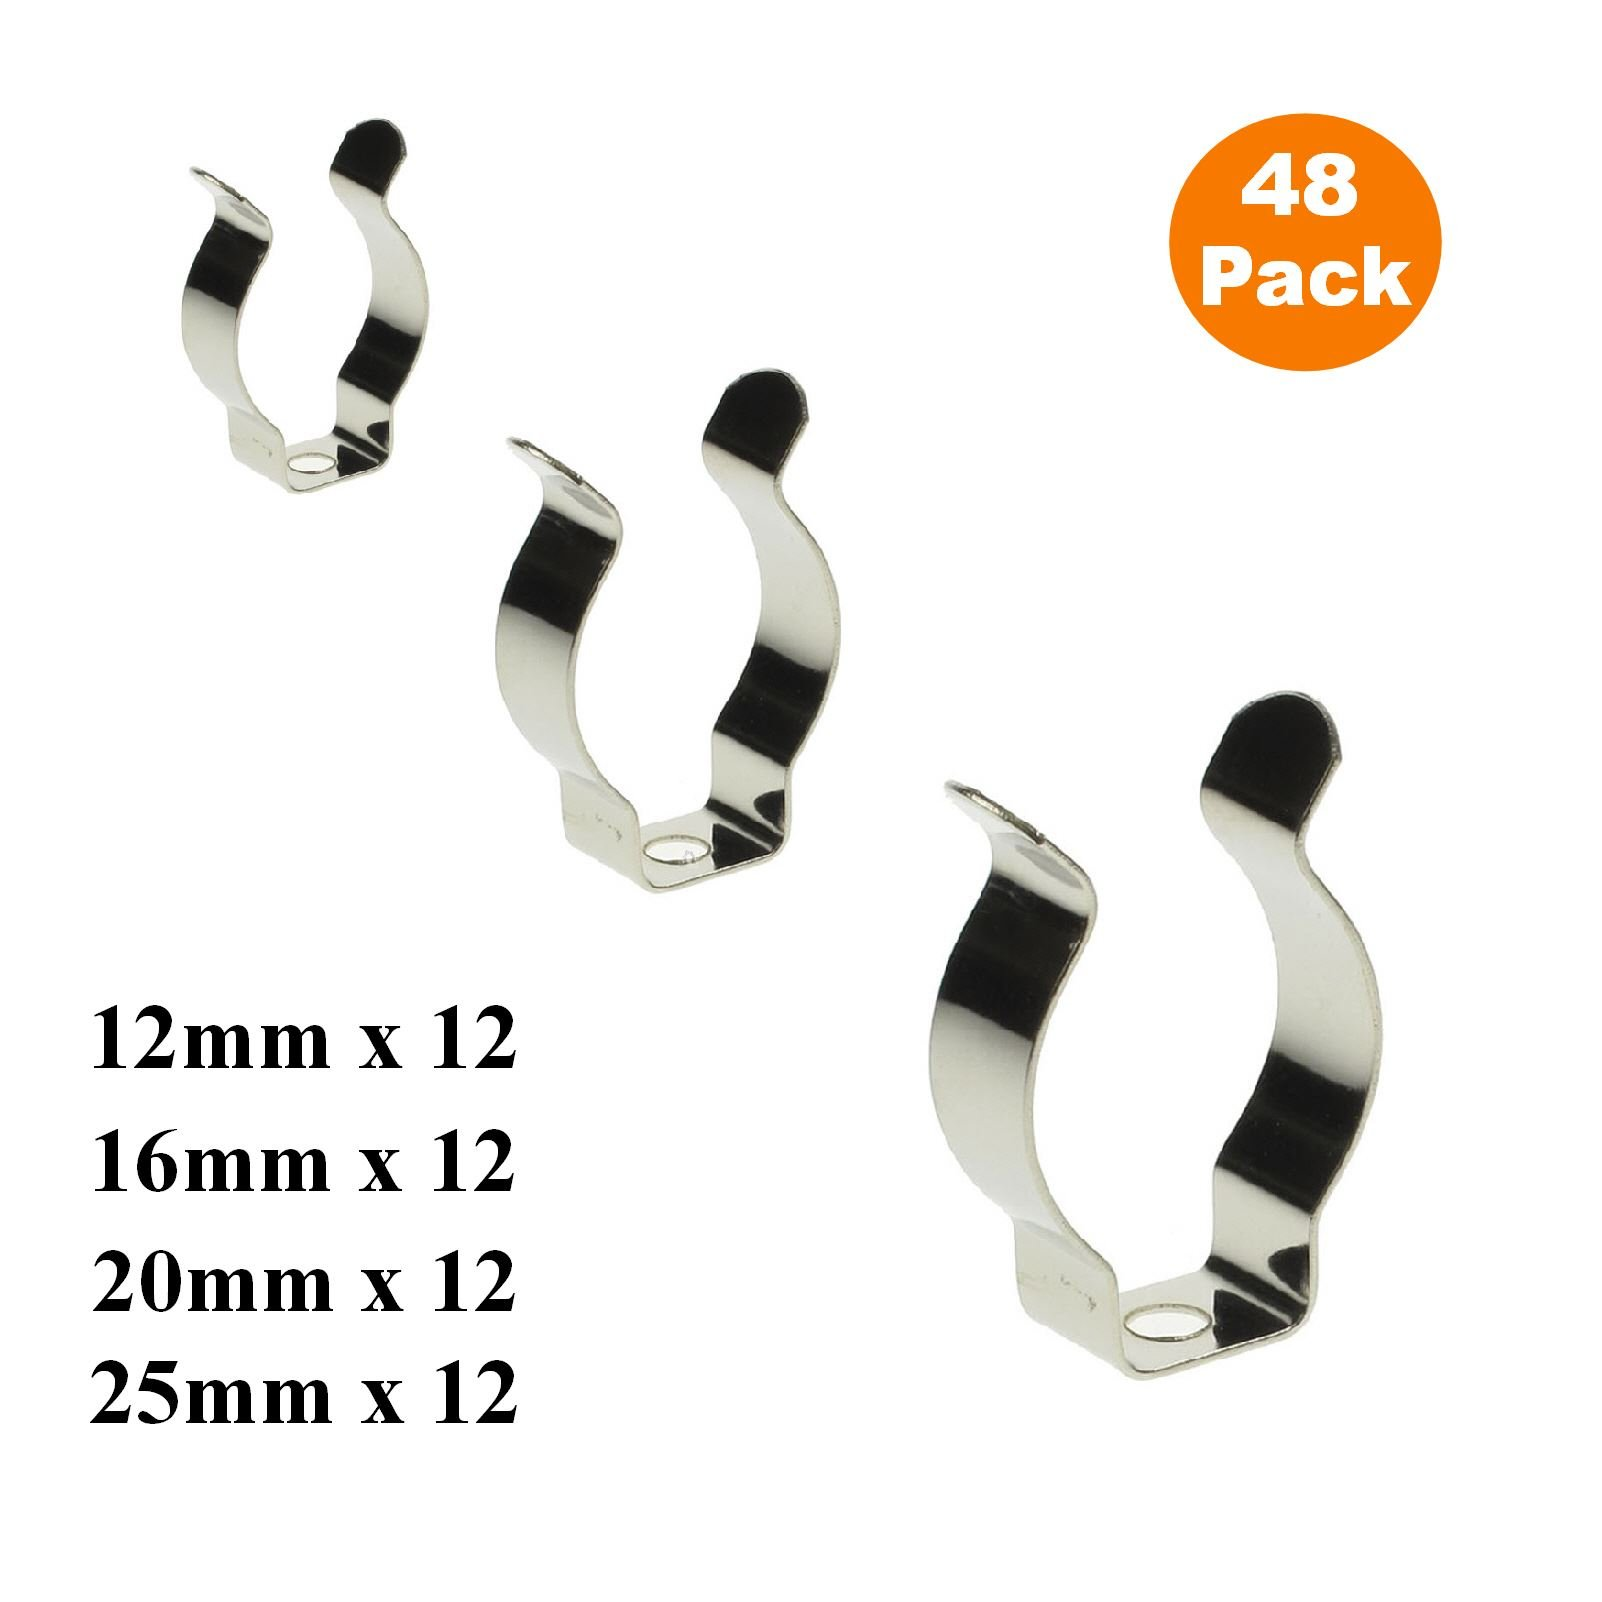 48 x Assorted Narrow Base Tool Spring Terry Clips / Heavy Duty Storage Hangers by Smarthome